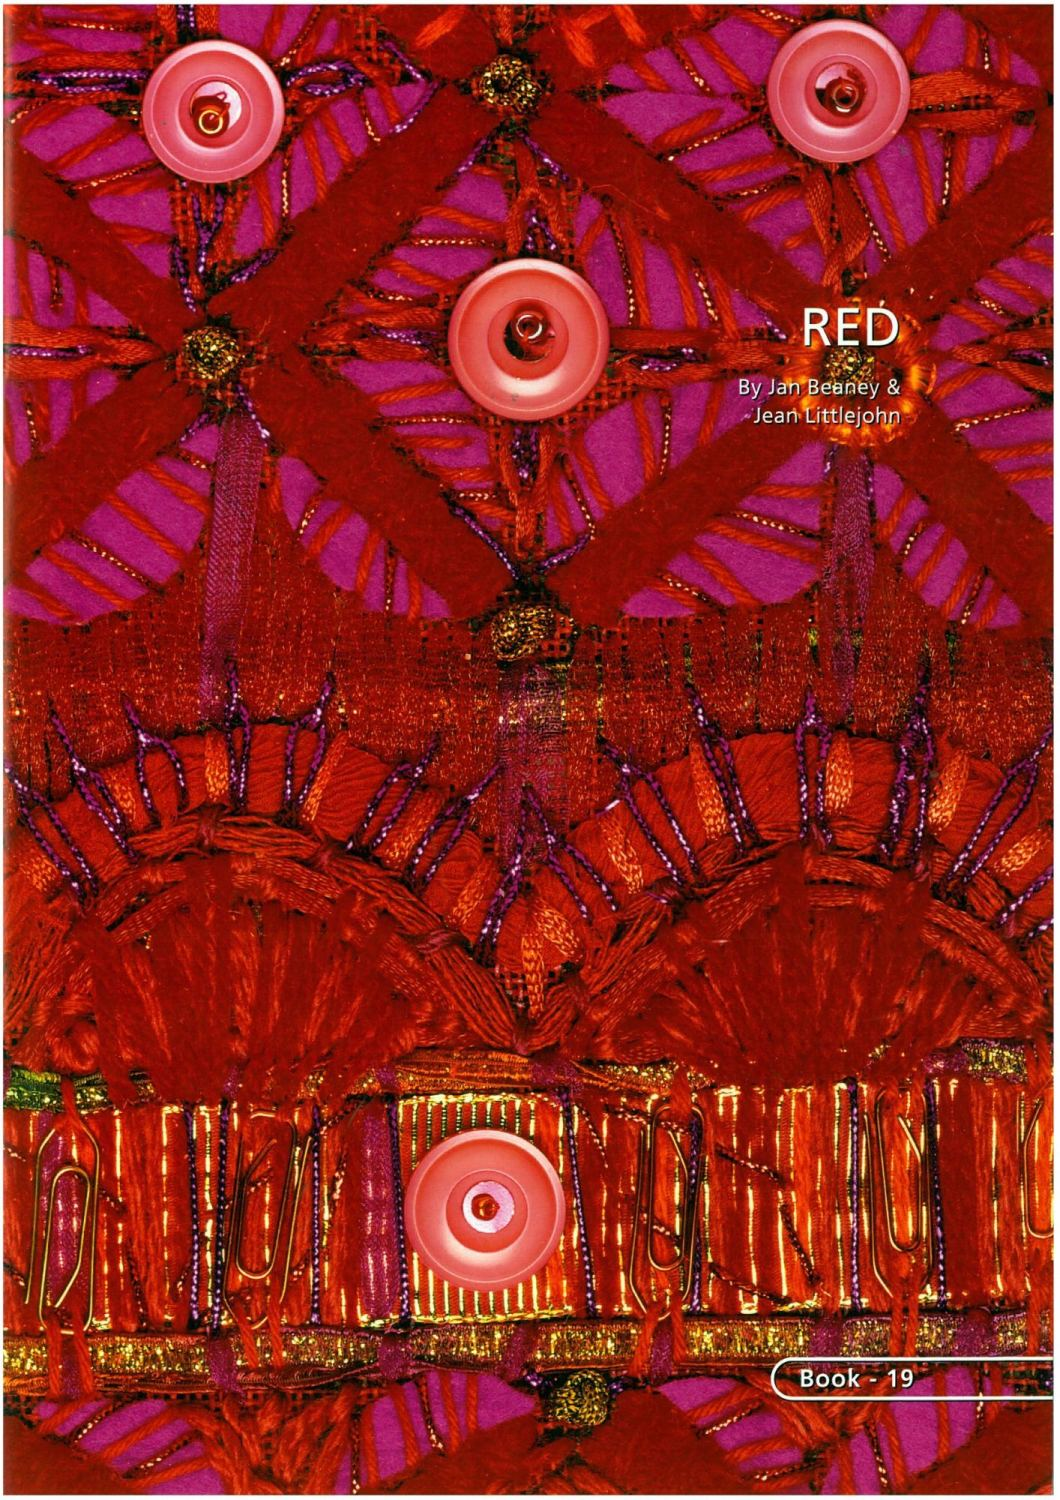 BOOK 19 – RED. By Jan Beaney and Jean Littlejohn